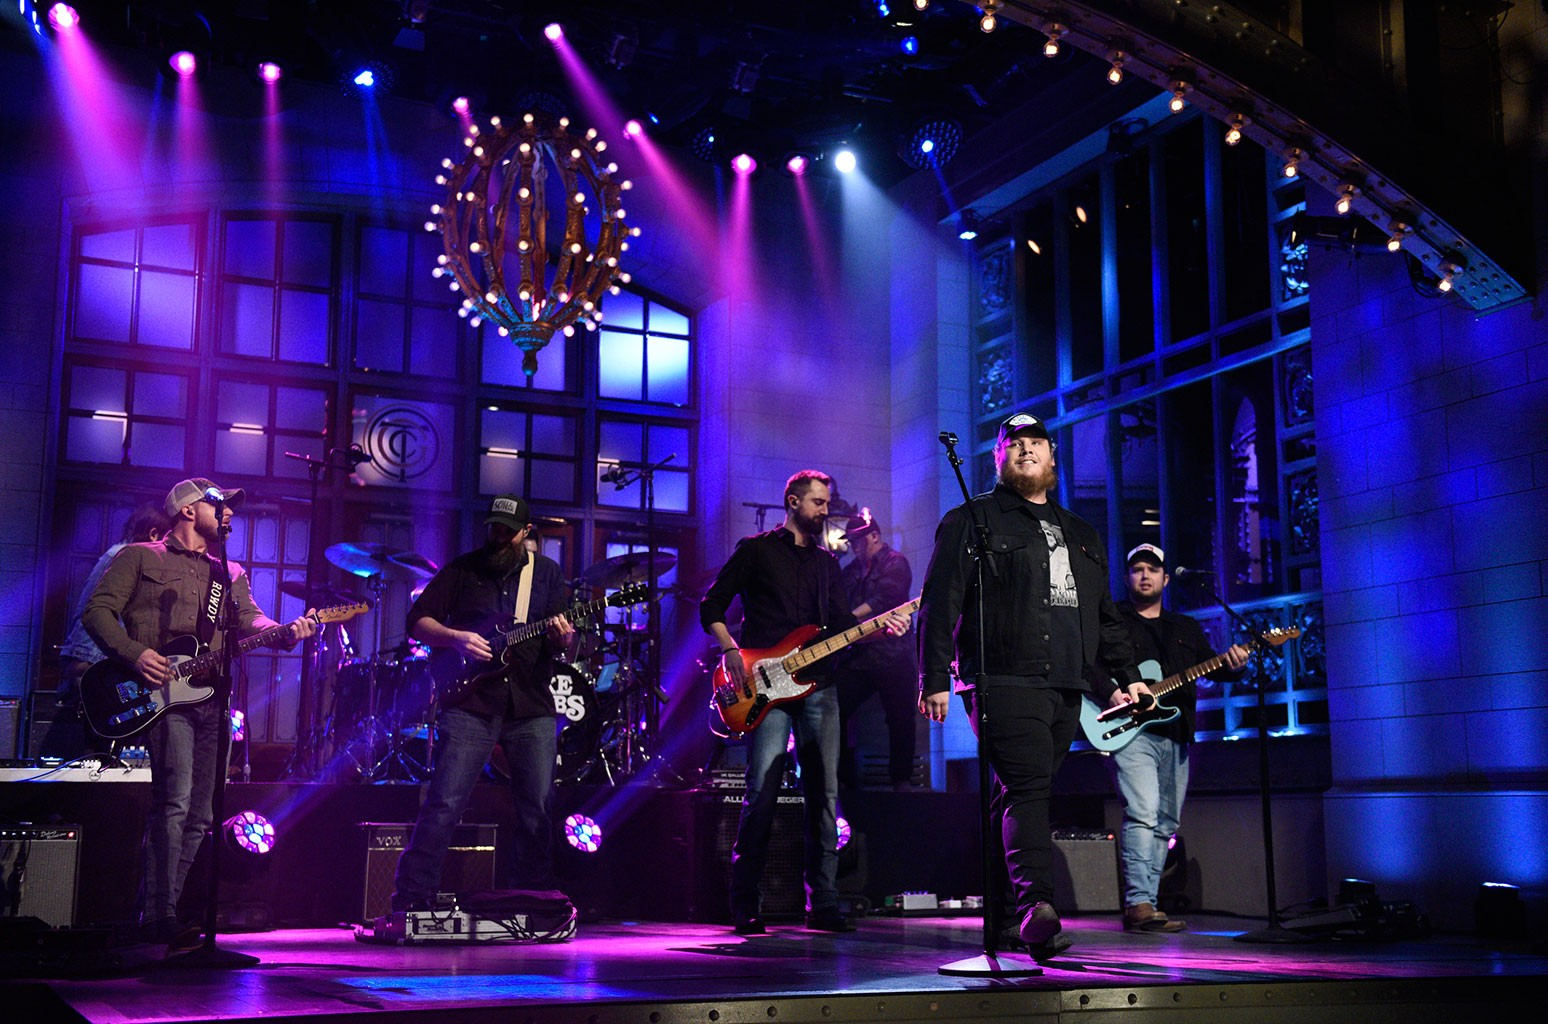 Luke Combs 'Does' It Again, Topping Country Airplay Chart With Eric Church